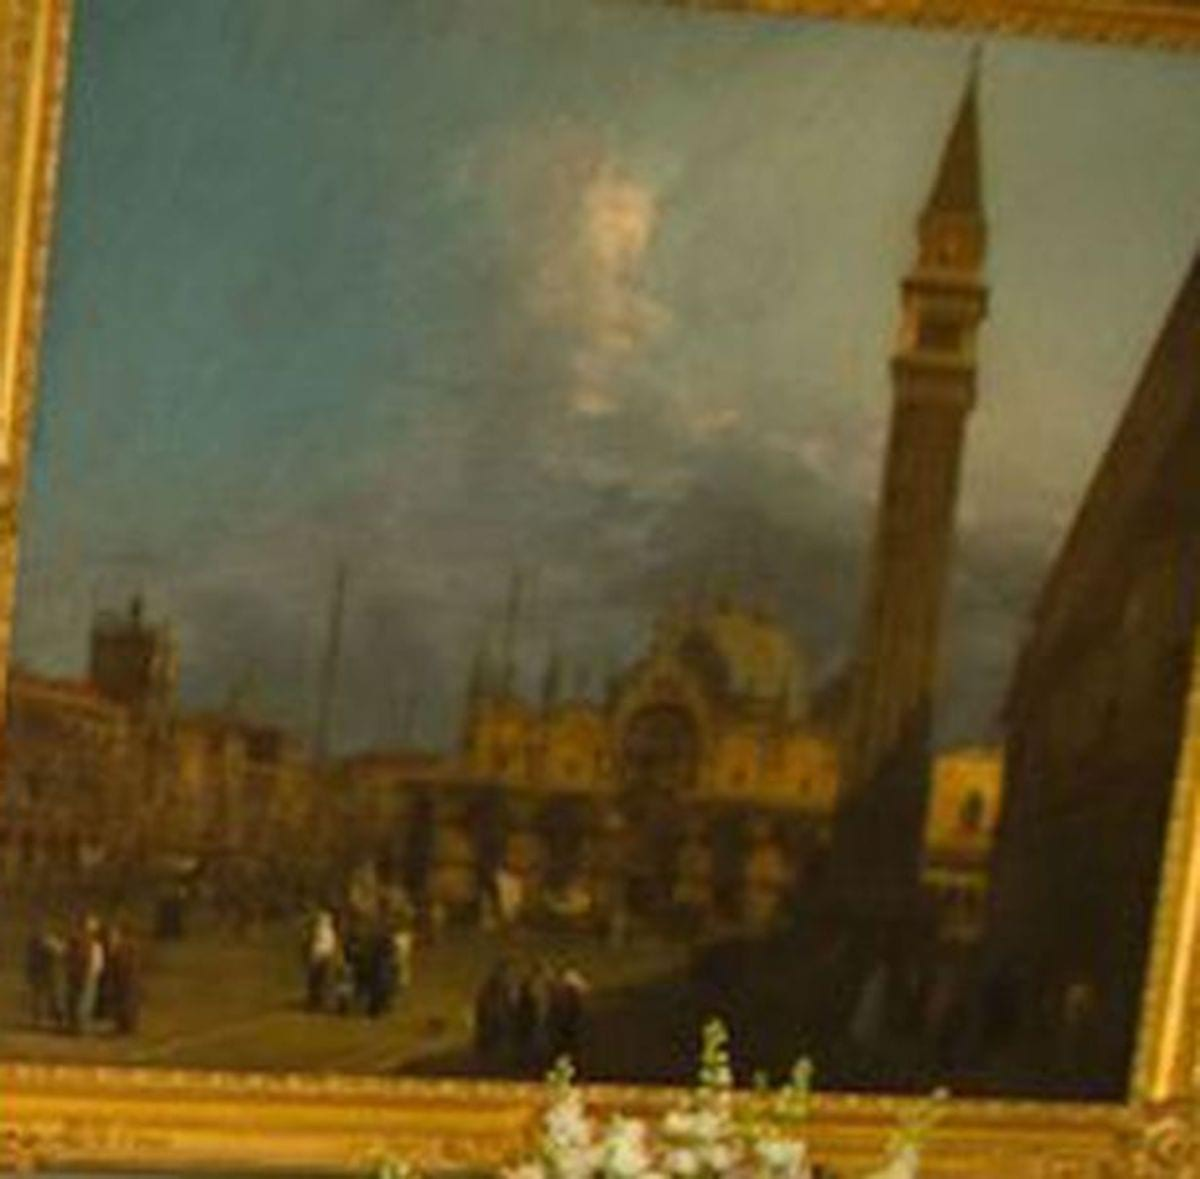 Another-Canaletto-painting-from-the-set-this-one-called-Venice-Piazza-S-Marco-with-the-Basilica-and-Campanile